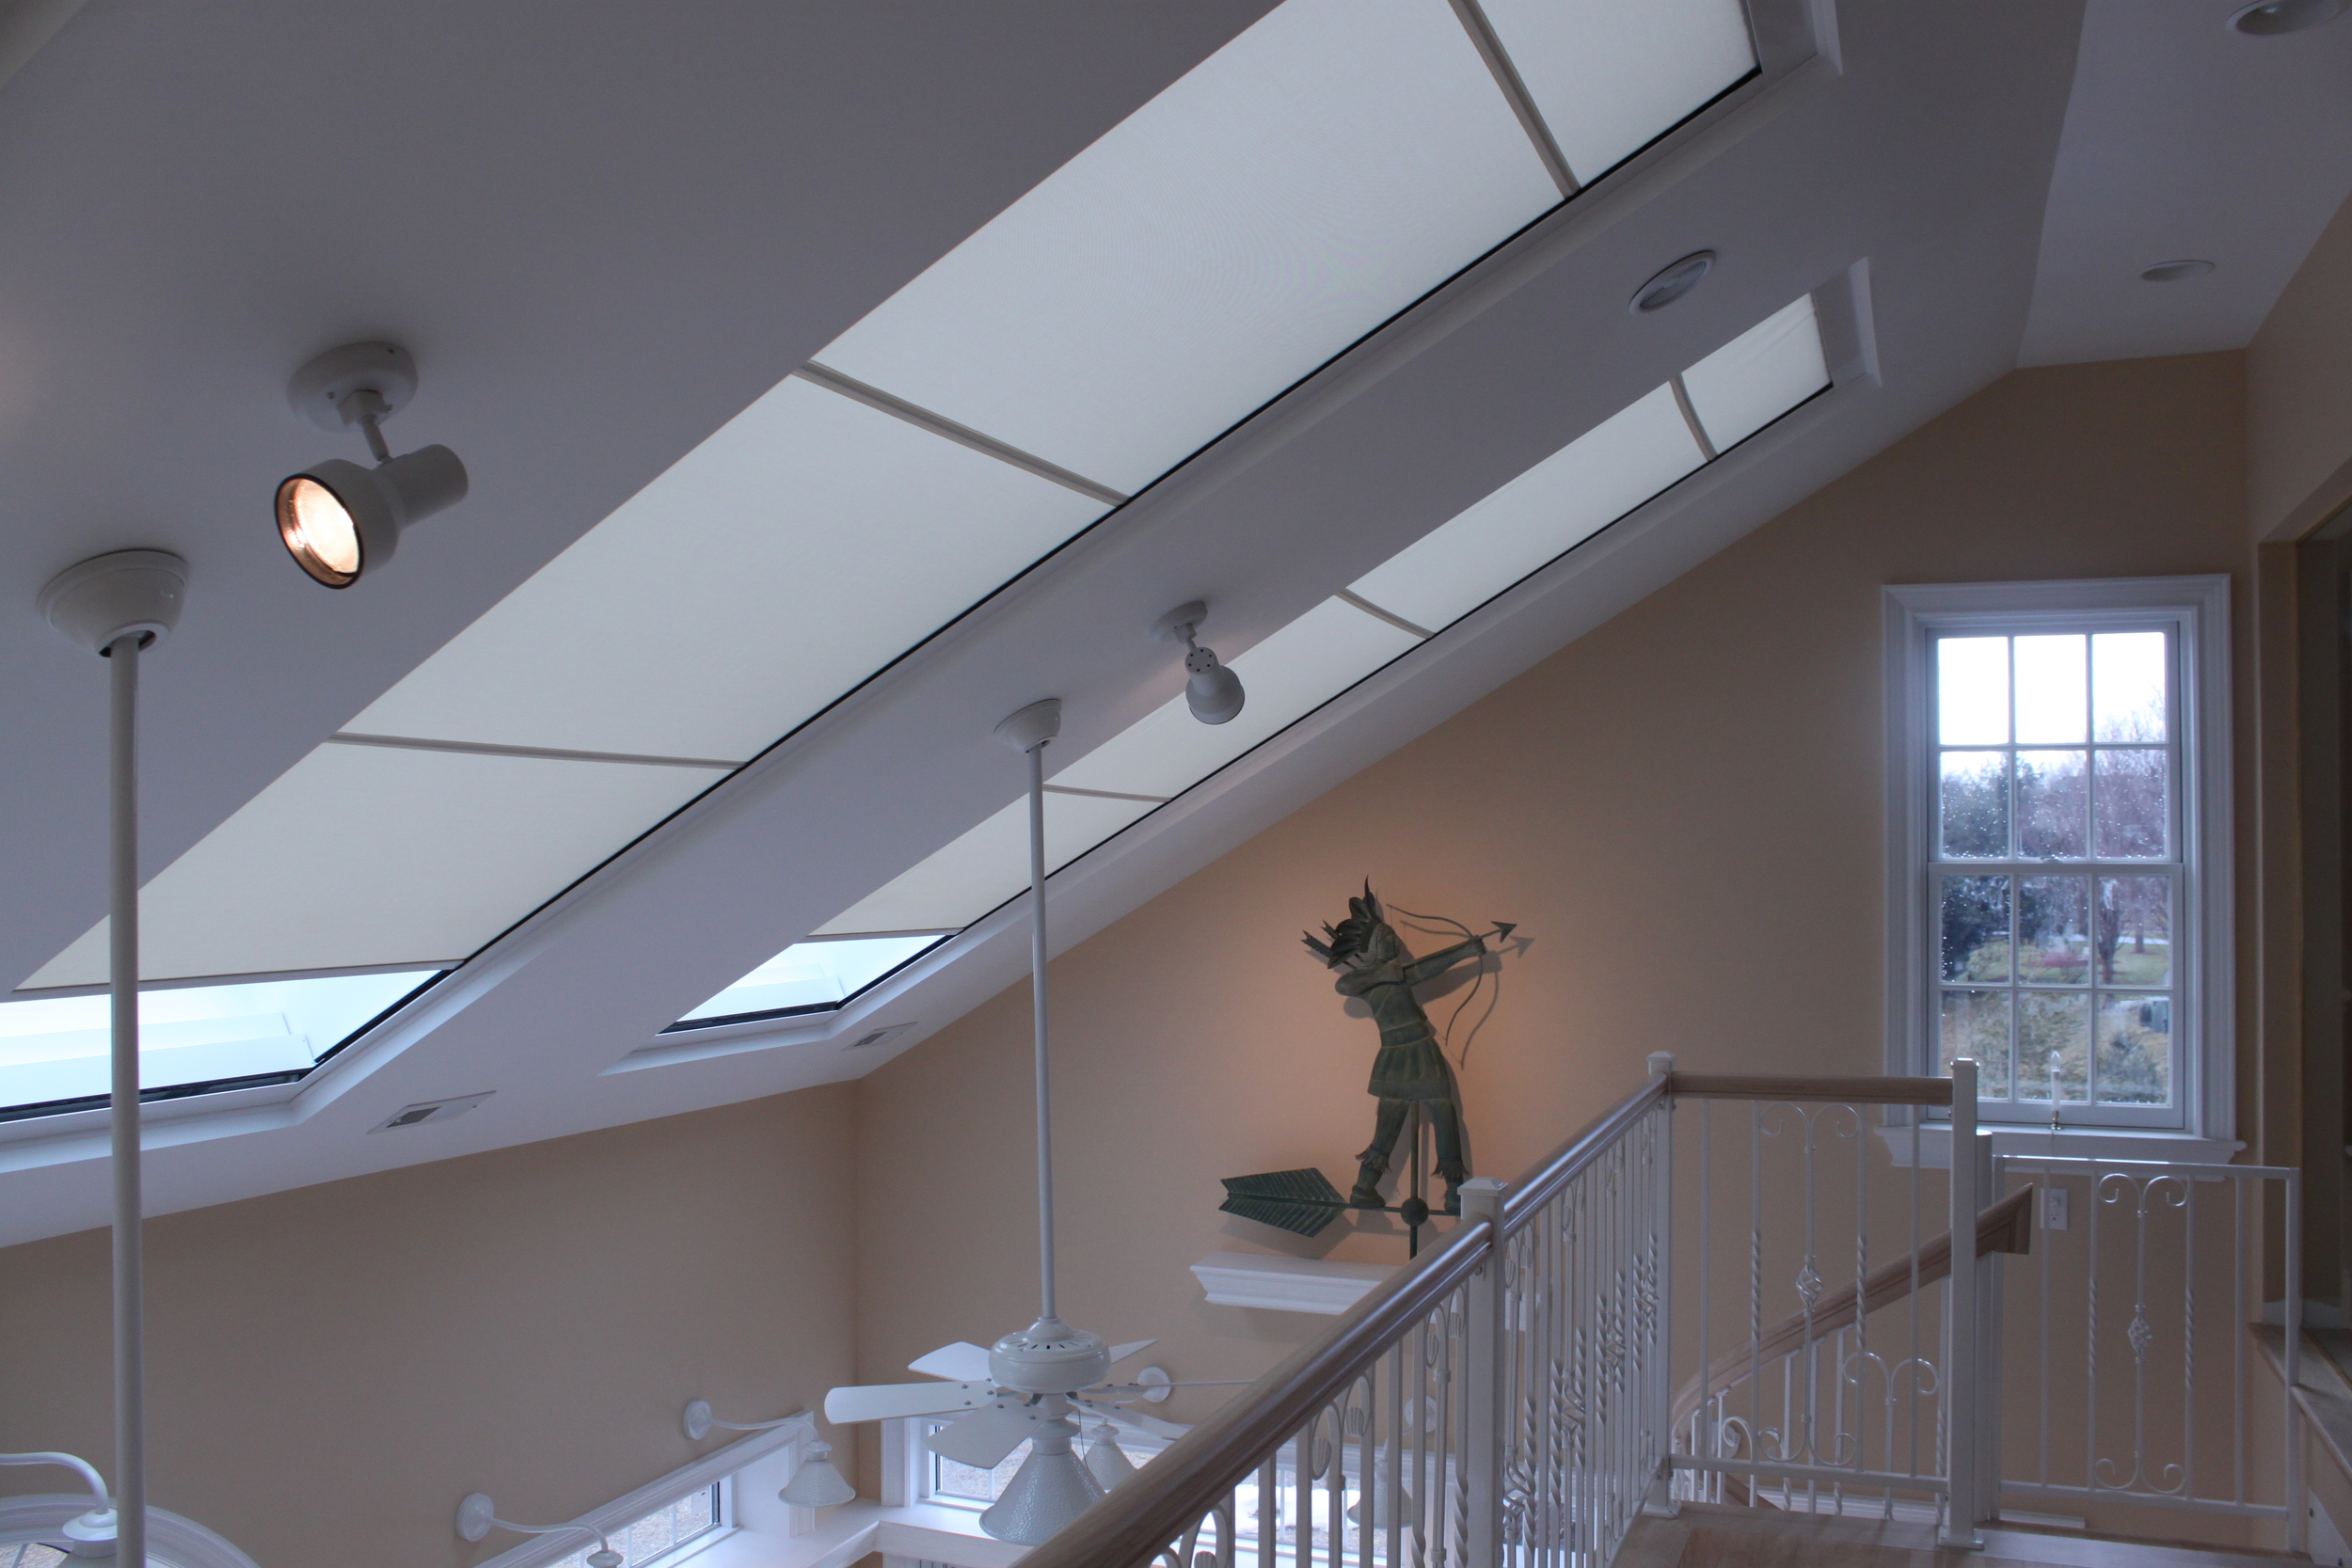 Crown FTS Skylight Shades